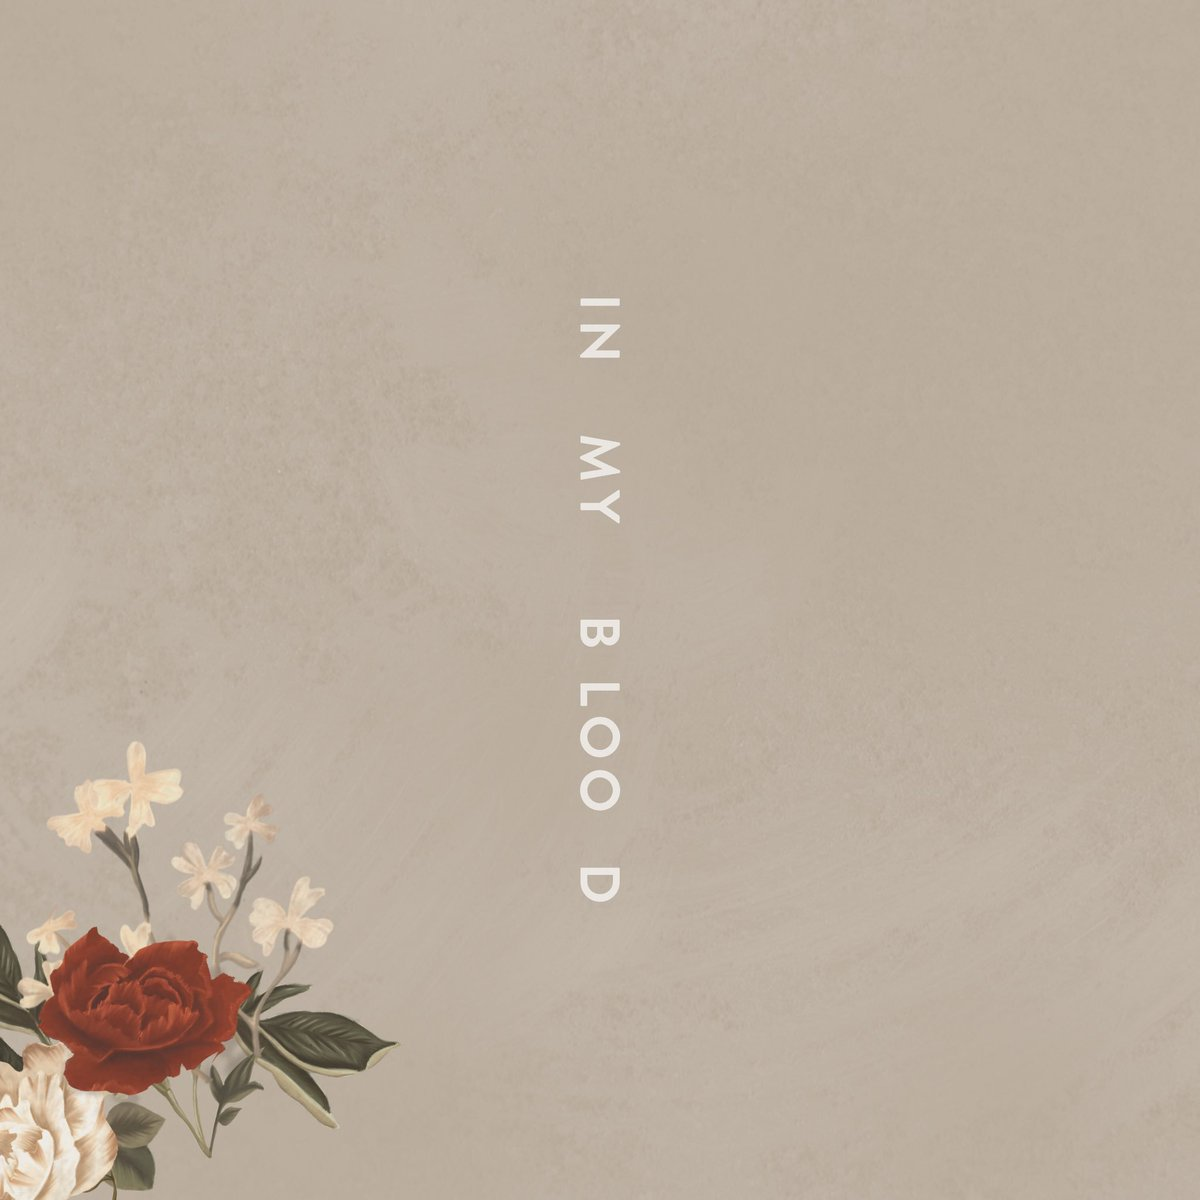 #InMyBlood March 22nd https://t.co/cqCLv...